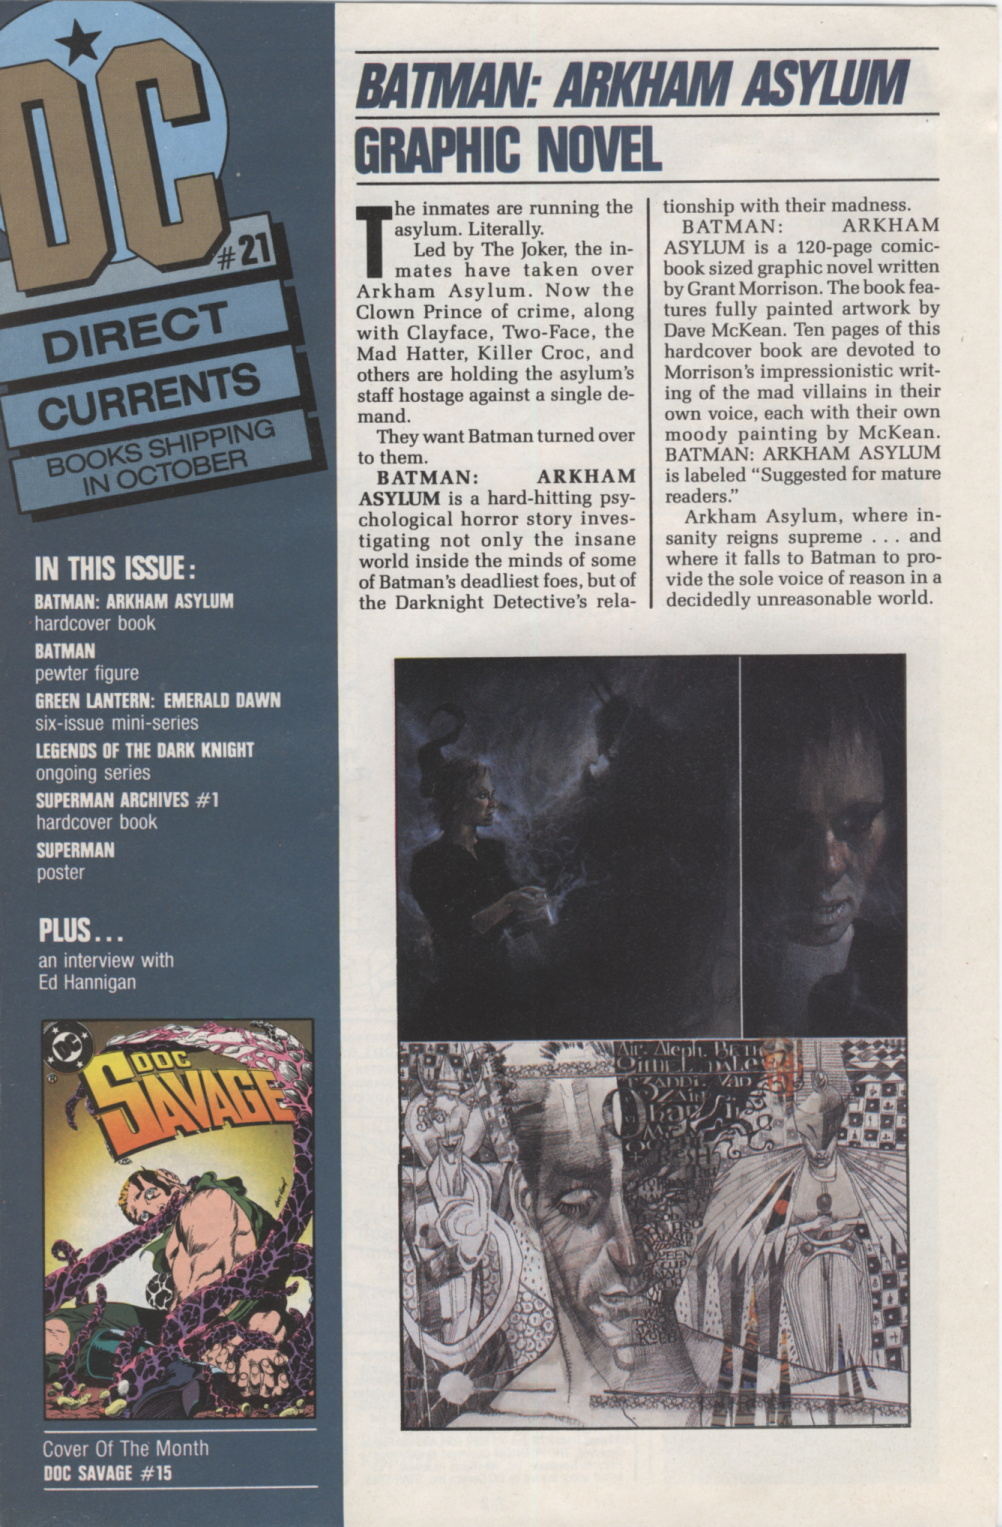 Time Capsule: DC Direct Currents 21, October 1989